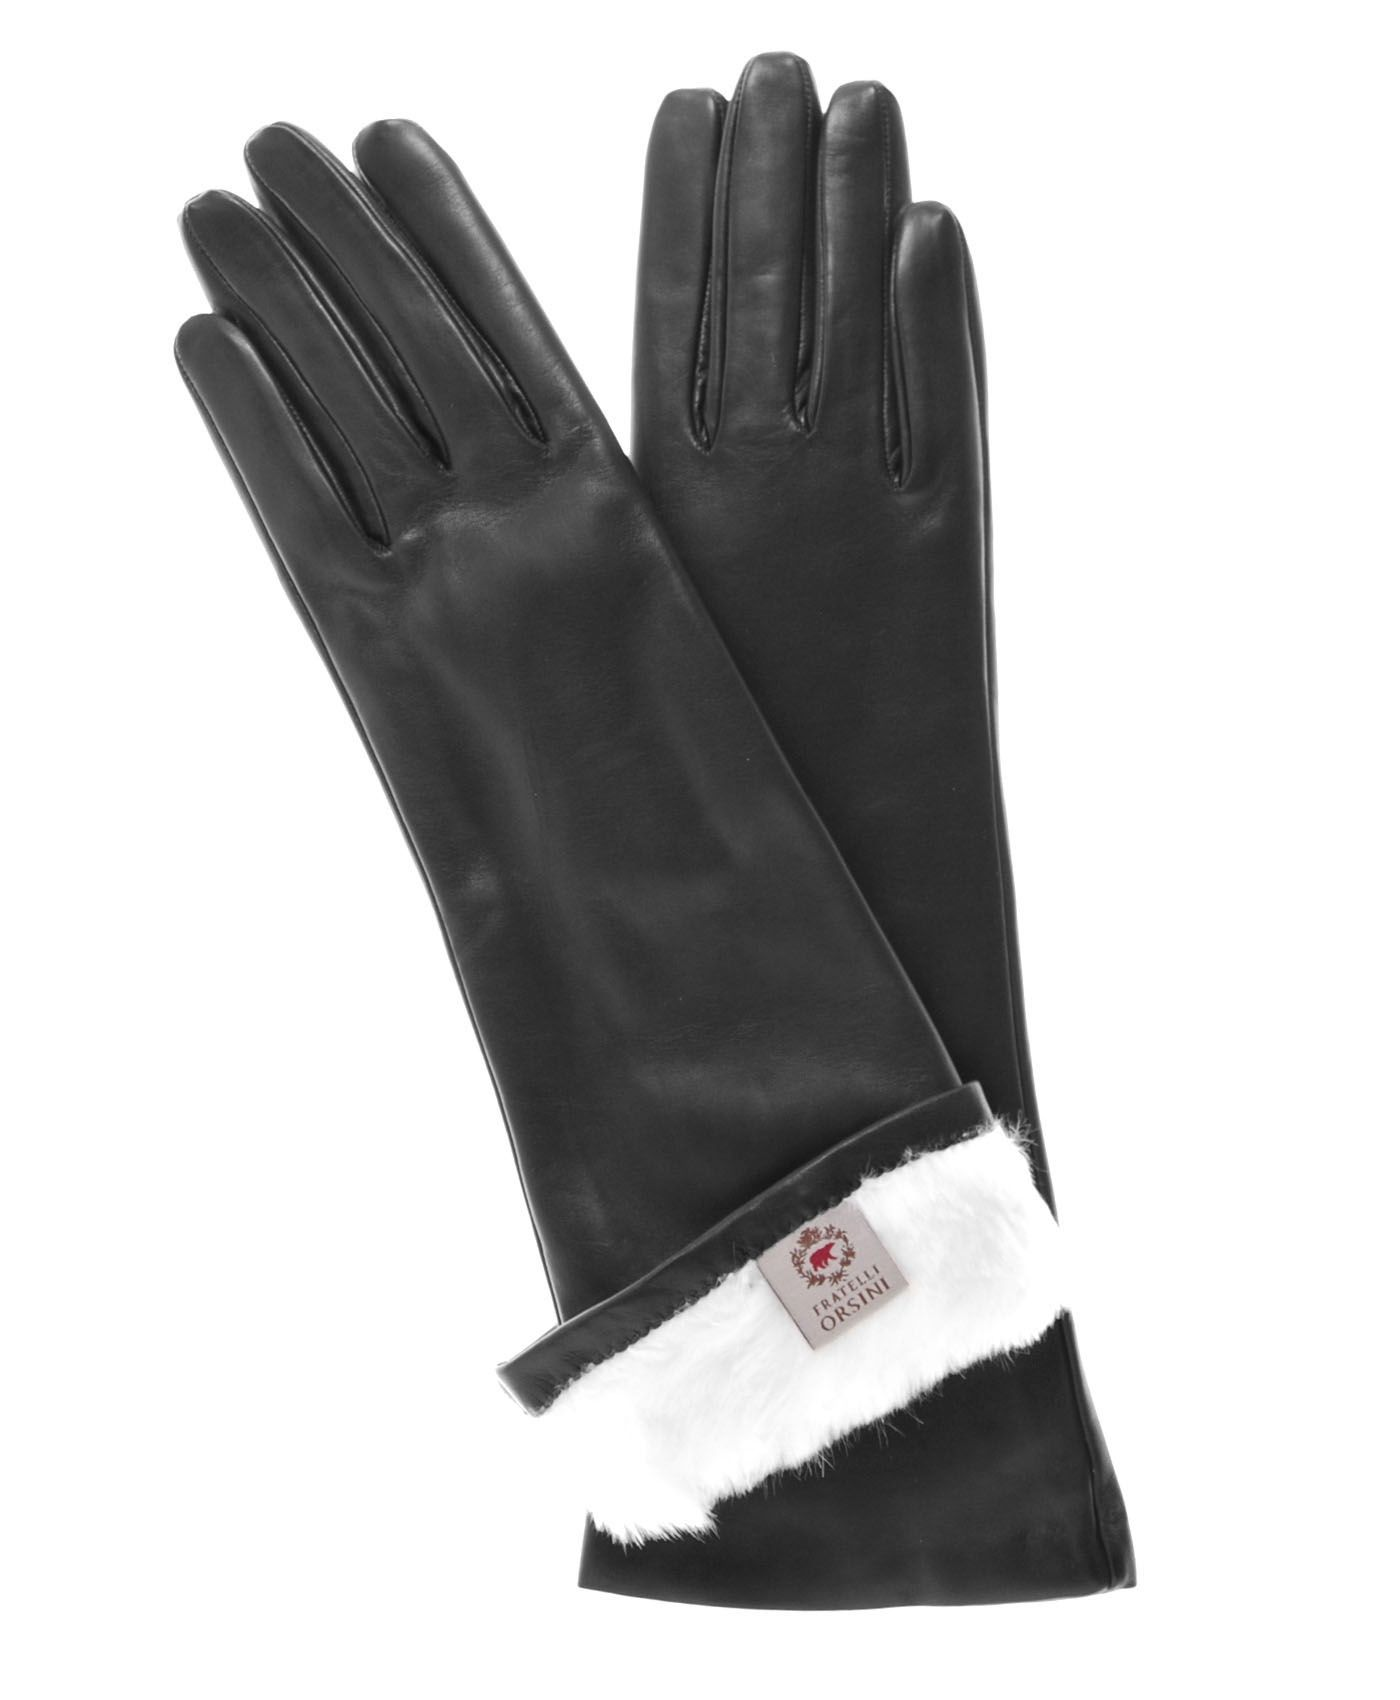 Black leather gloves with fur - Leather